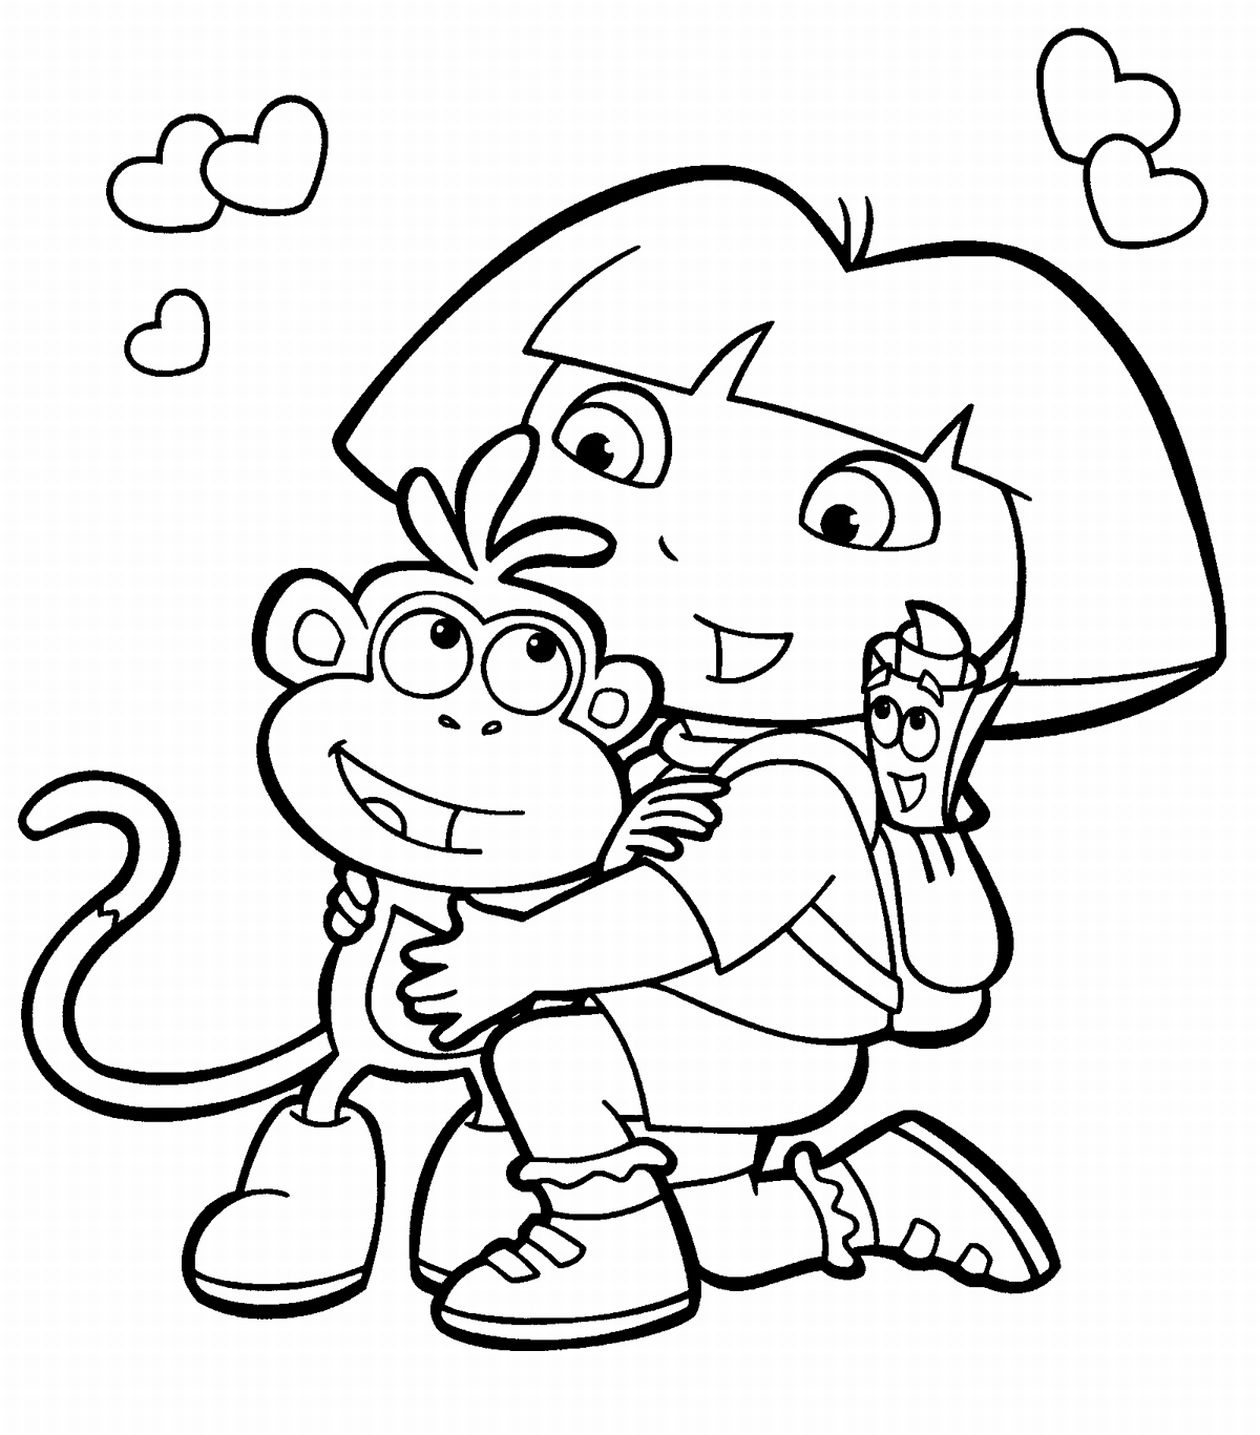 dora coloring picture dora drawing pictures at getdrawings free download dora coloring picture